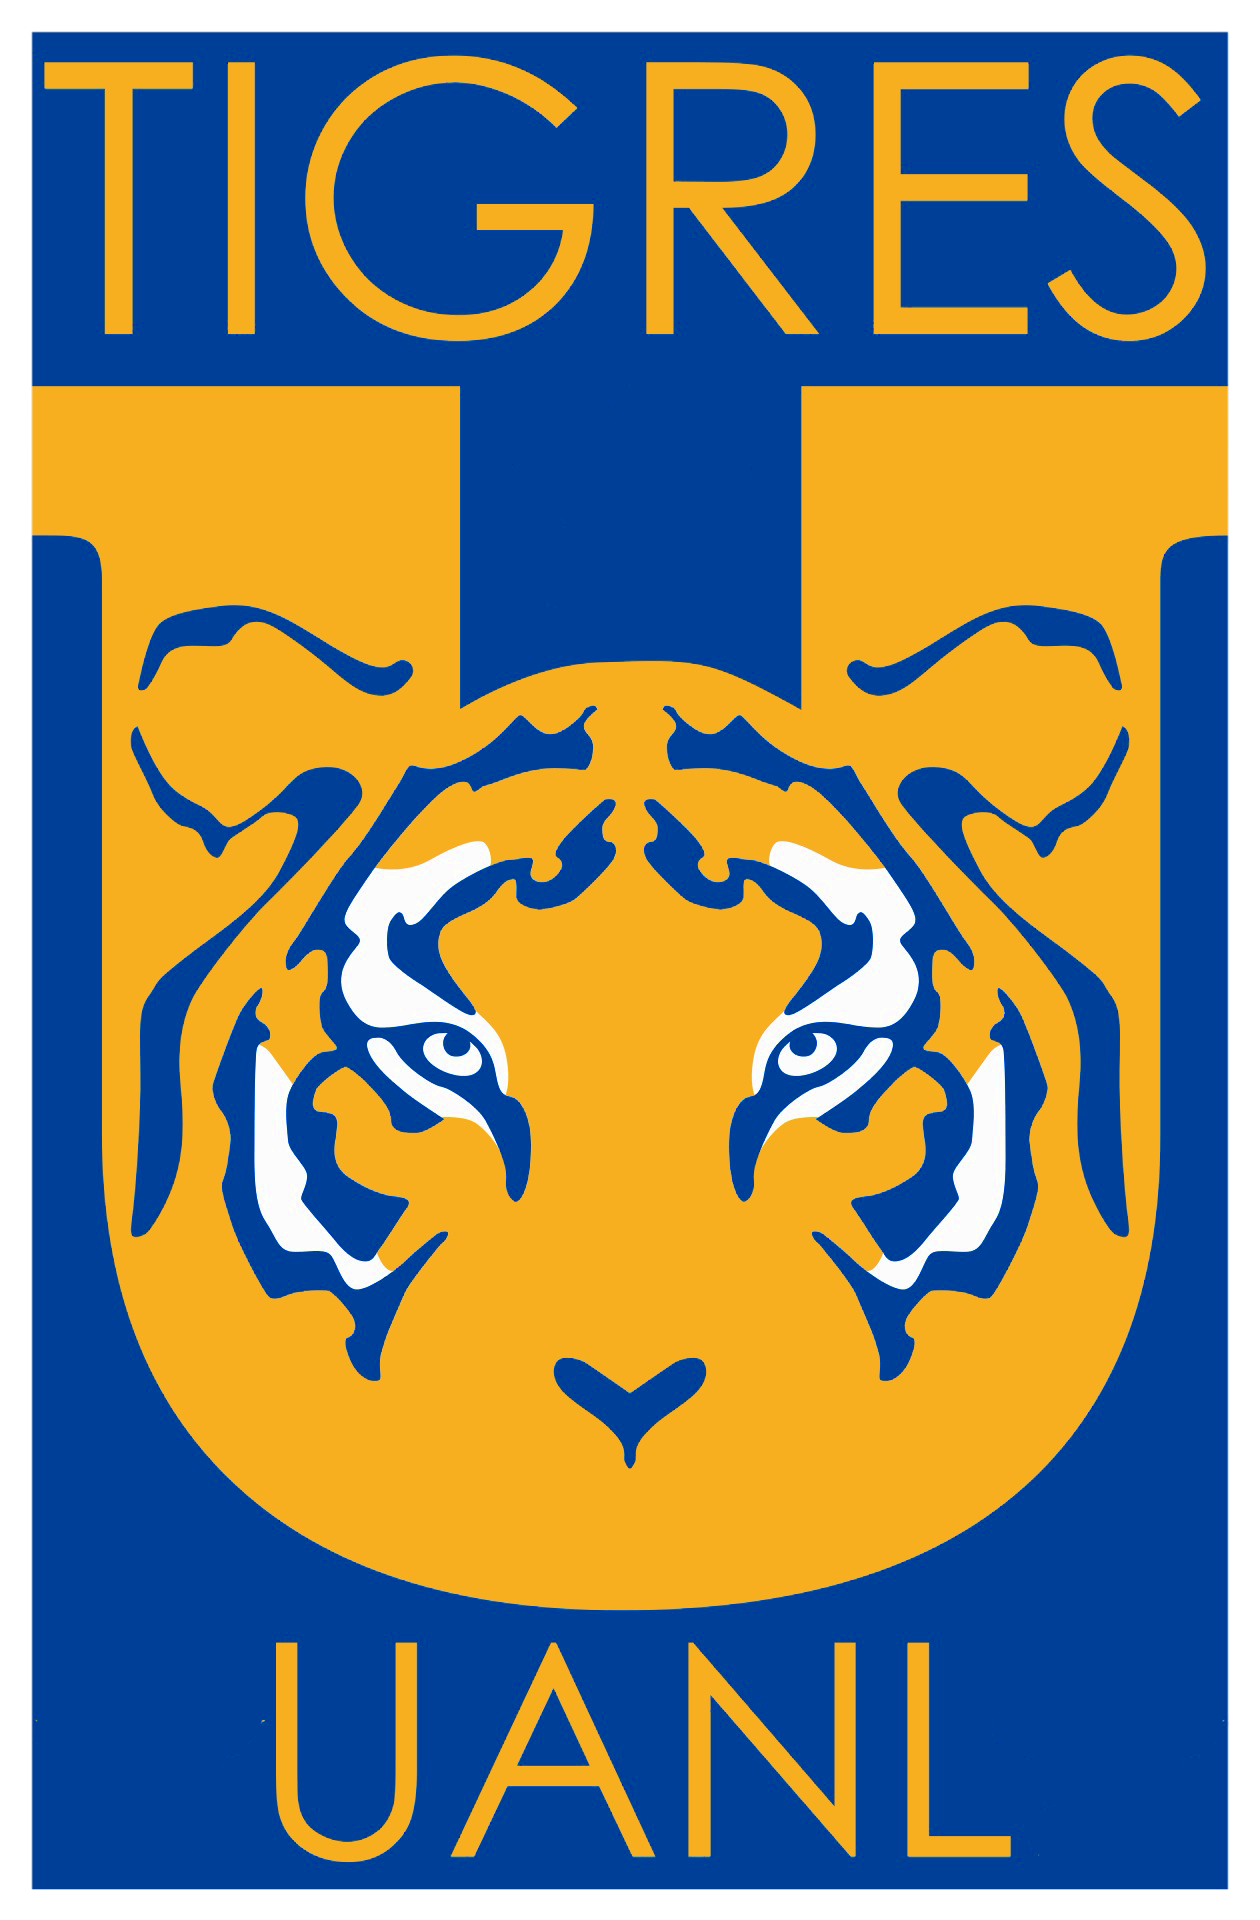 Tigres UANL | FIFA Football Gaming wiki